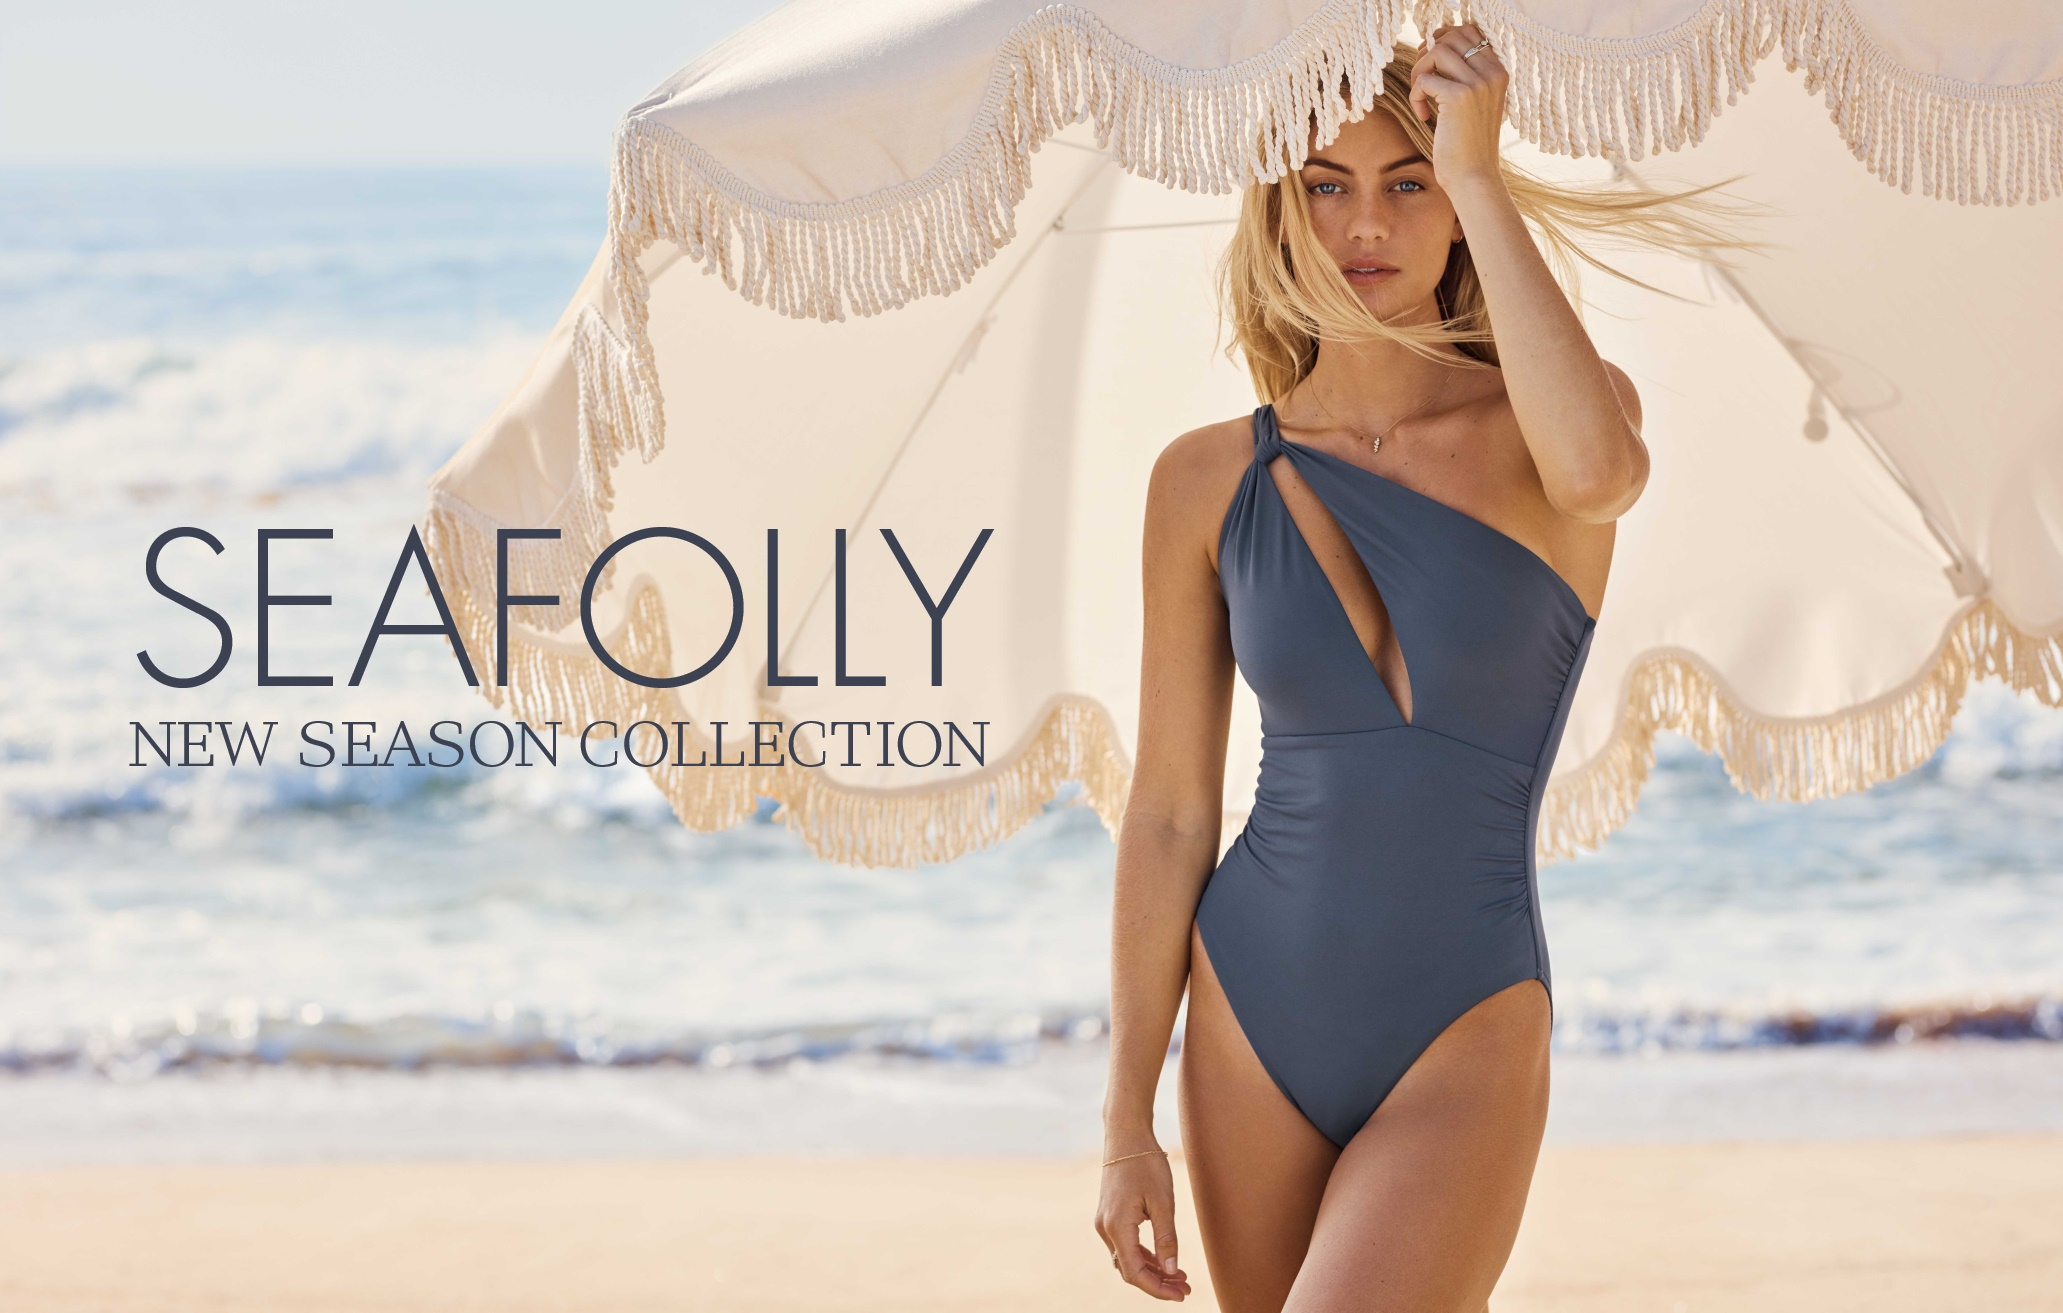 Seafolly Summer 2020